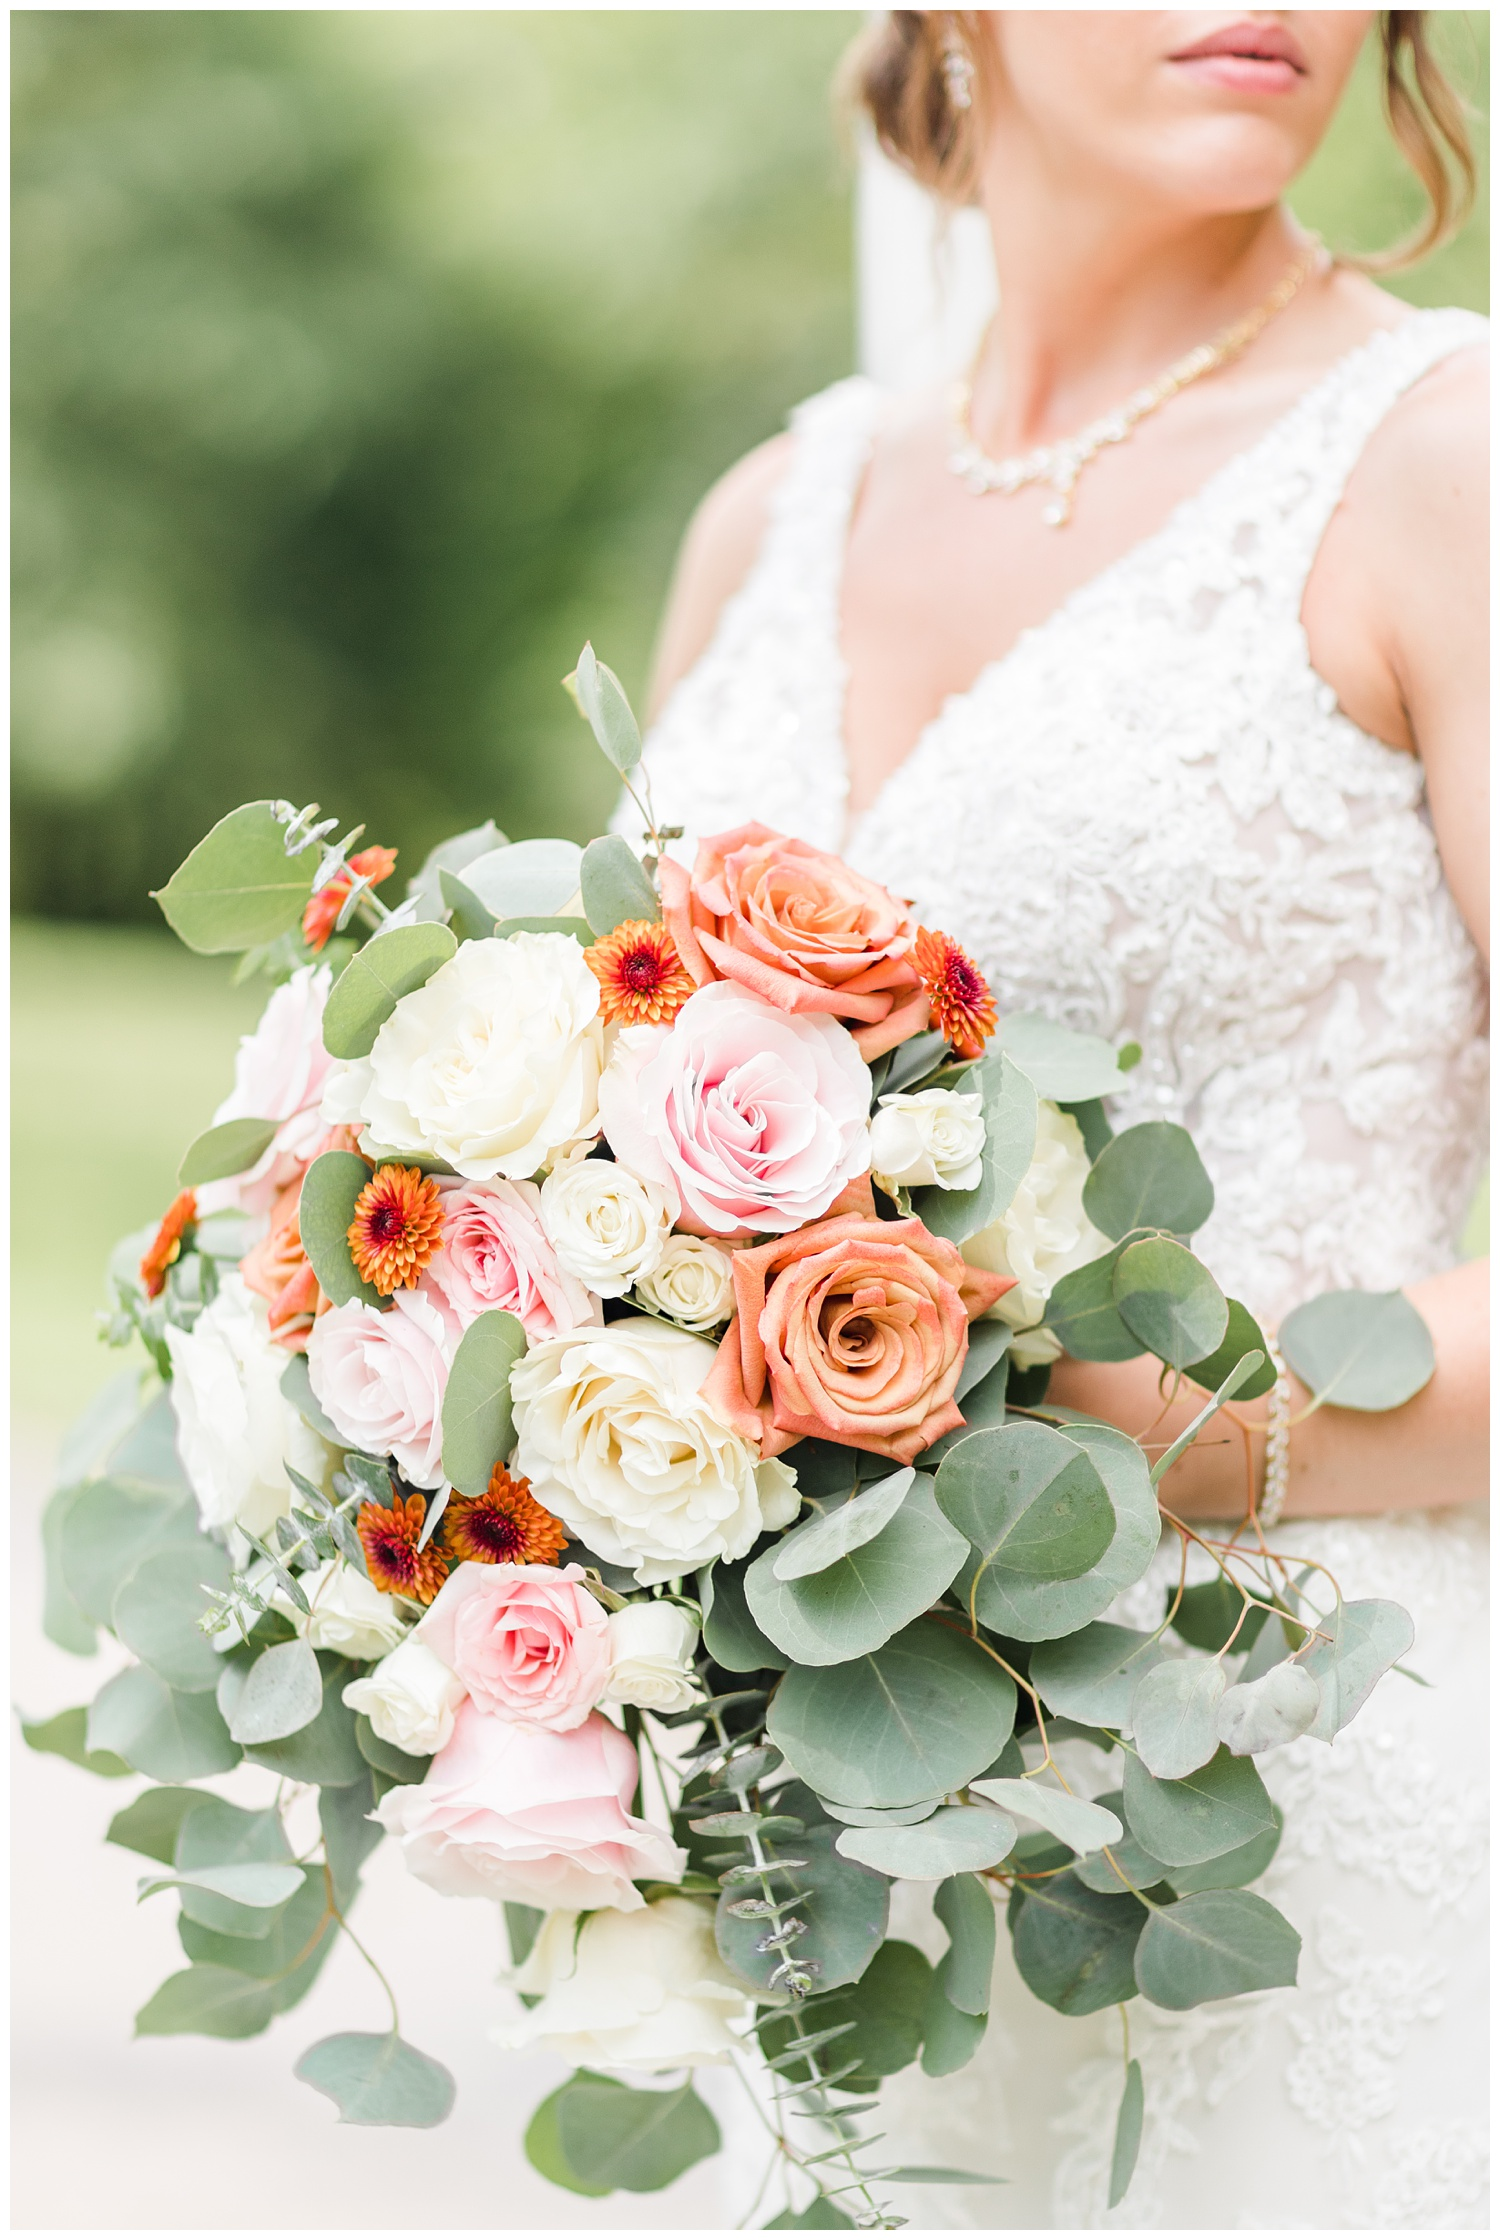 Renee's bridal bouquet featuring white, light pink and dusty orange roses as well as eucalyptus   CB Studio